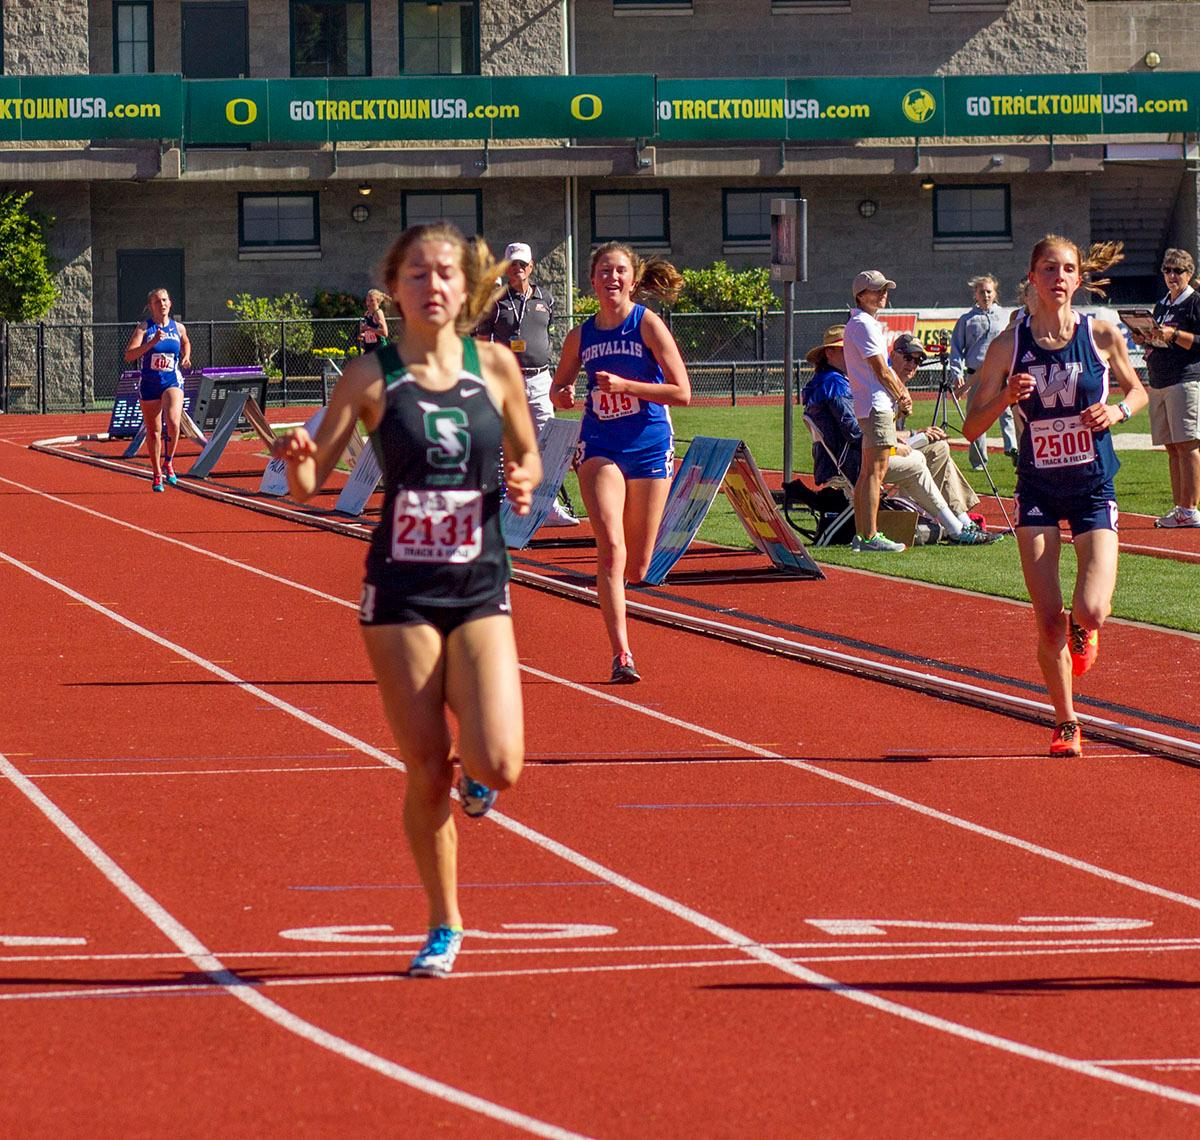 Olivia Brooks of Summit High School wins the 5A Girls 3000 Meter Run at the 2017 OSAA State Championship Track Meet at Hayward Field. She set a meet record running with a time of 9:50.94. Photo by: Stephanie Cusano, Oregon News Lab